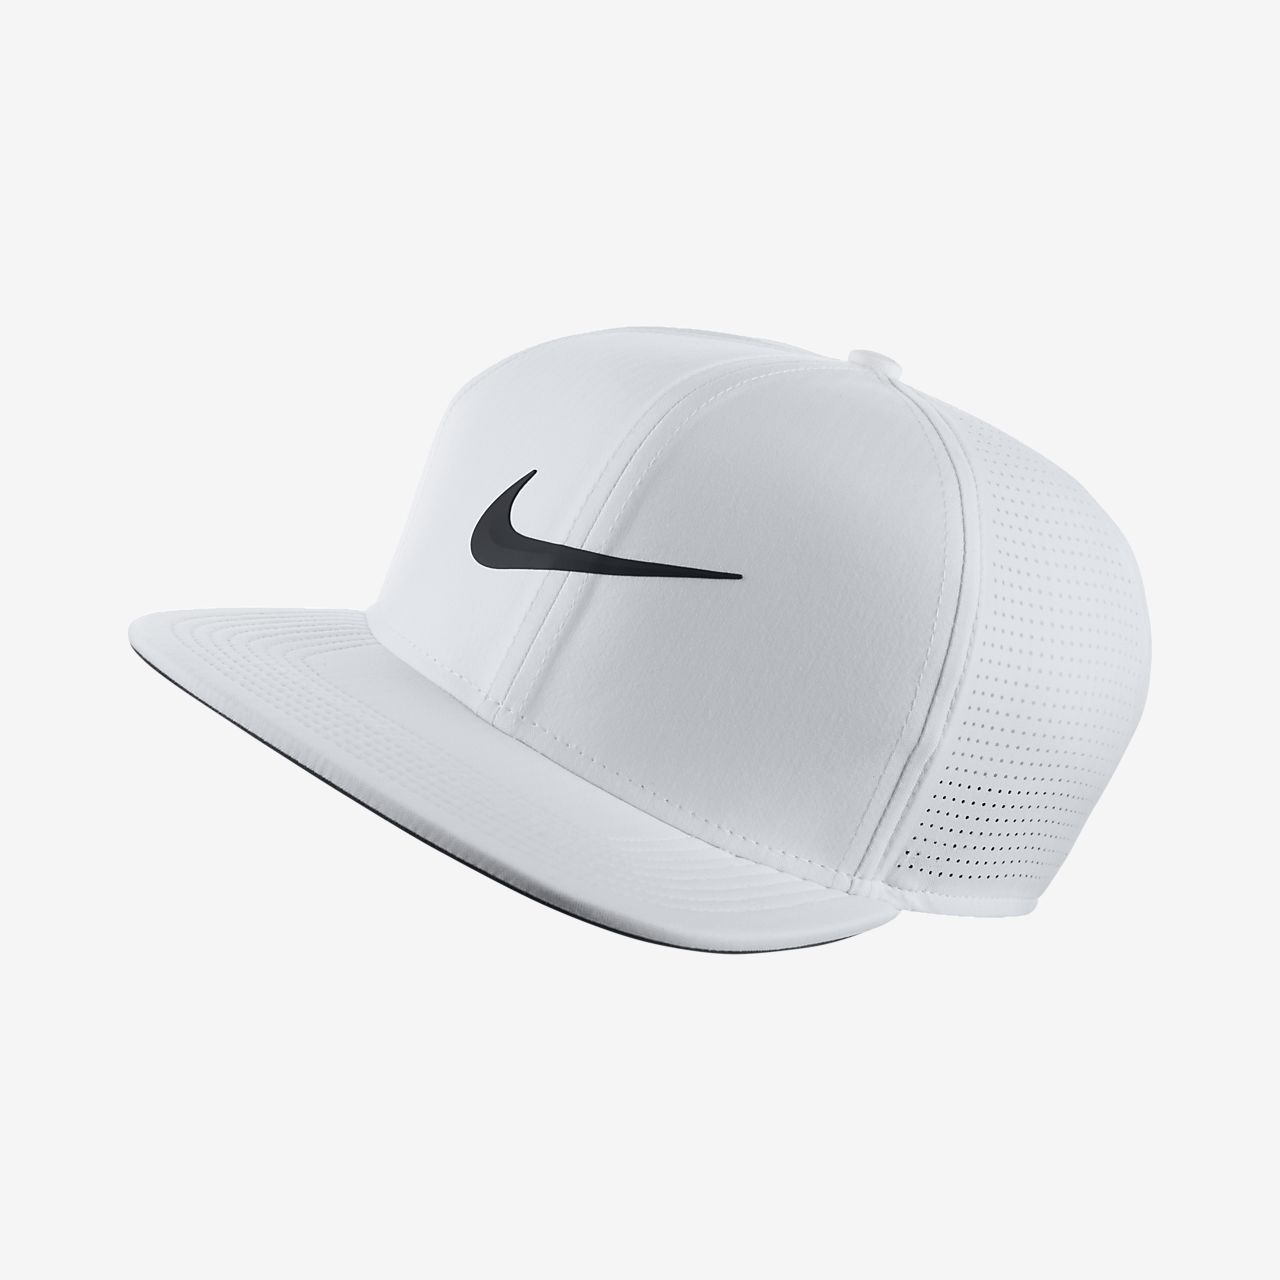 c2c30d6f6c4 Nike AeroBill Adjustable Golf Hat. Nike.com